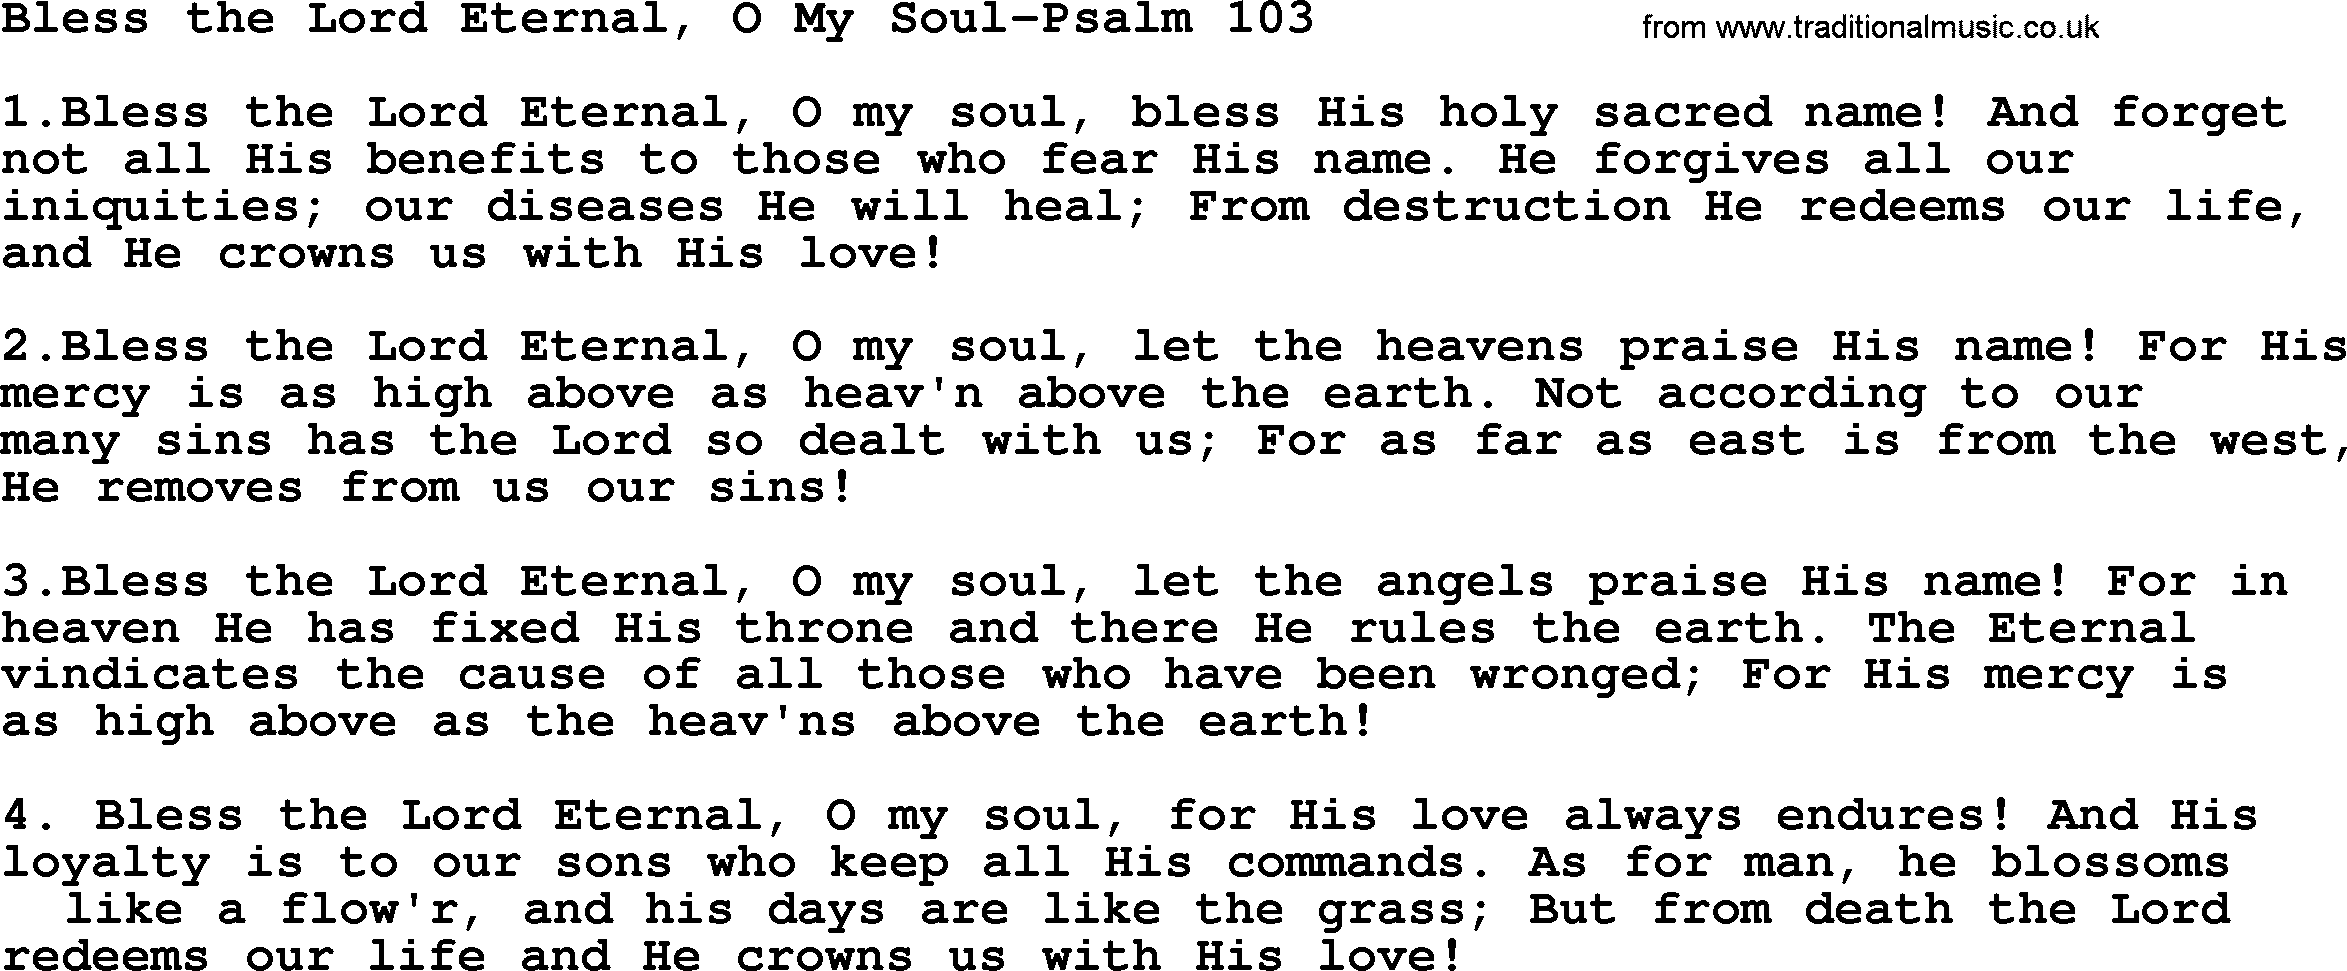 Hymns from the Psalms, Song: Bless The Lord Eternal, O My Soul-Psalm